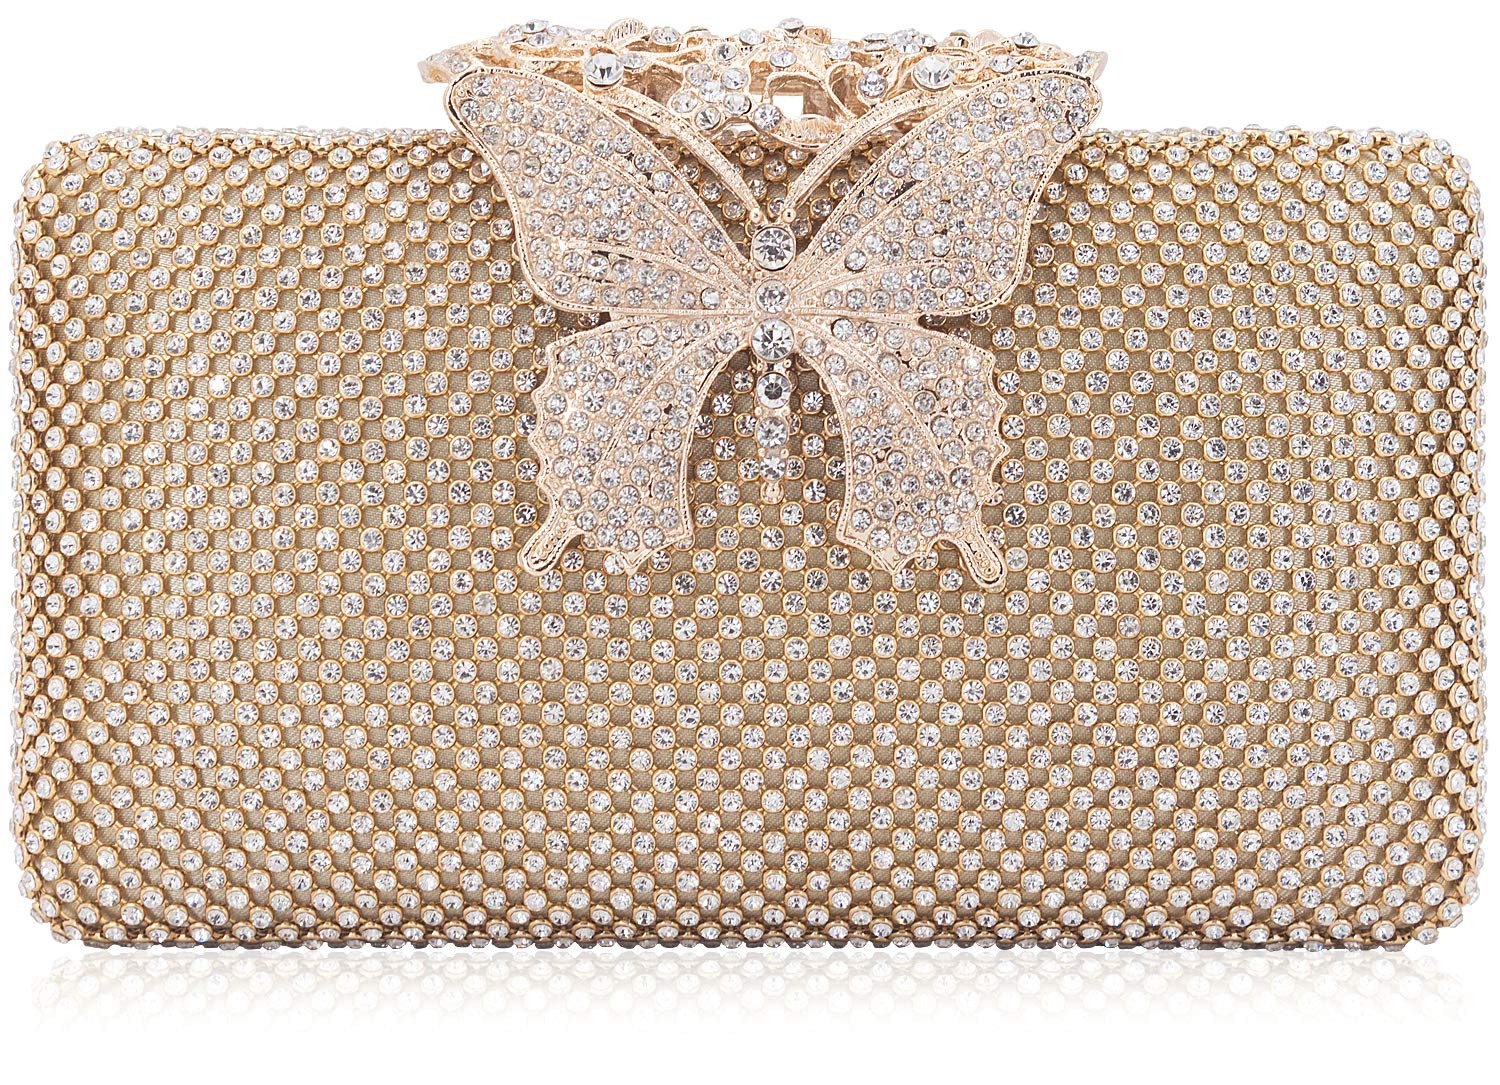 Dexmay Rhinestone Crystal Clutch Purse Butterfly Clasp Women Evening Bag for Formal Party Gold